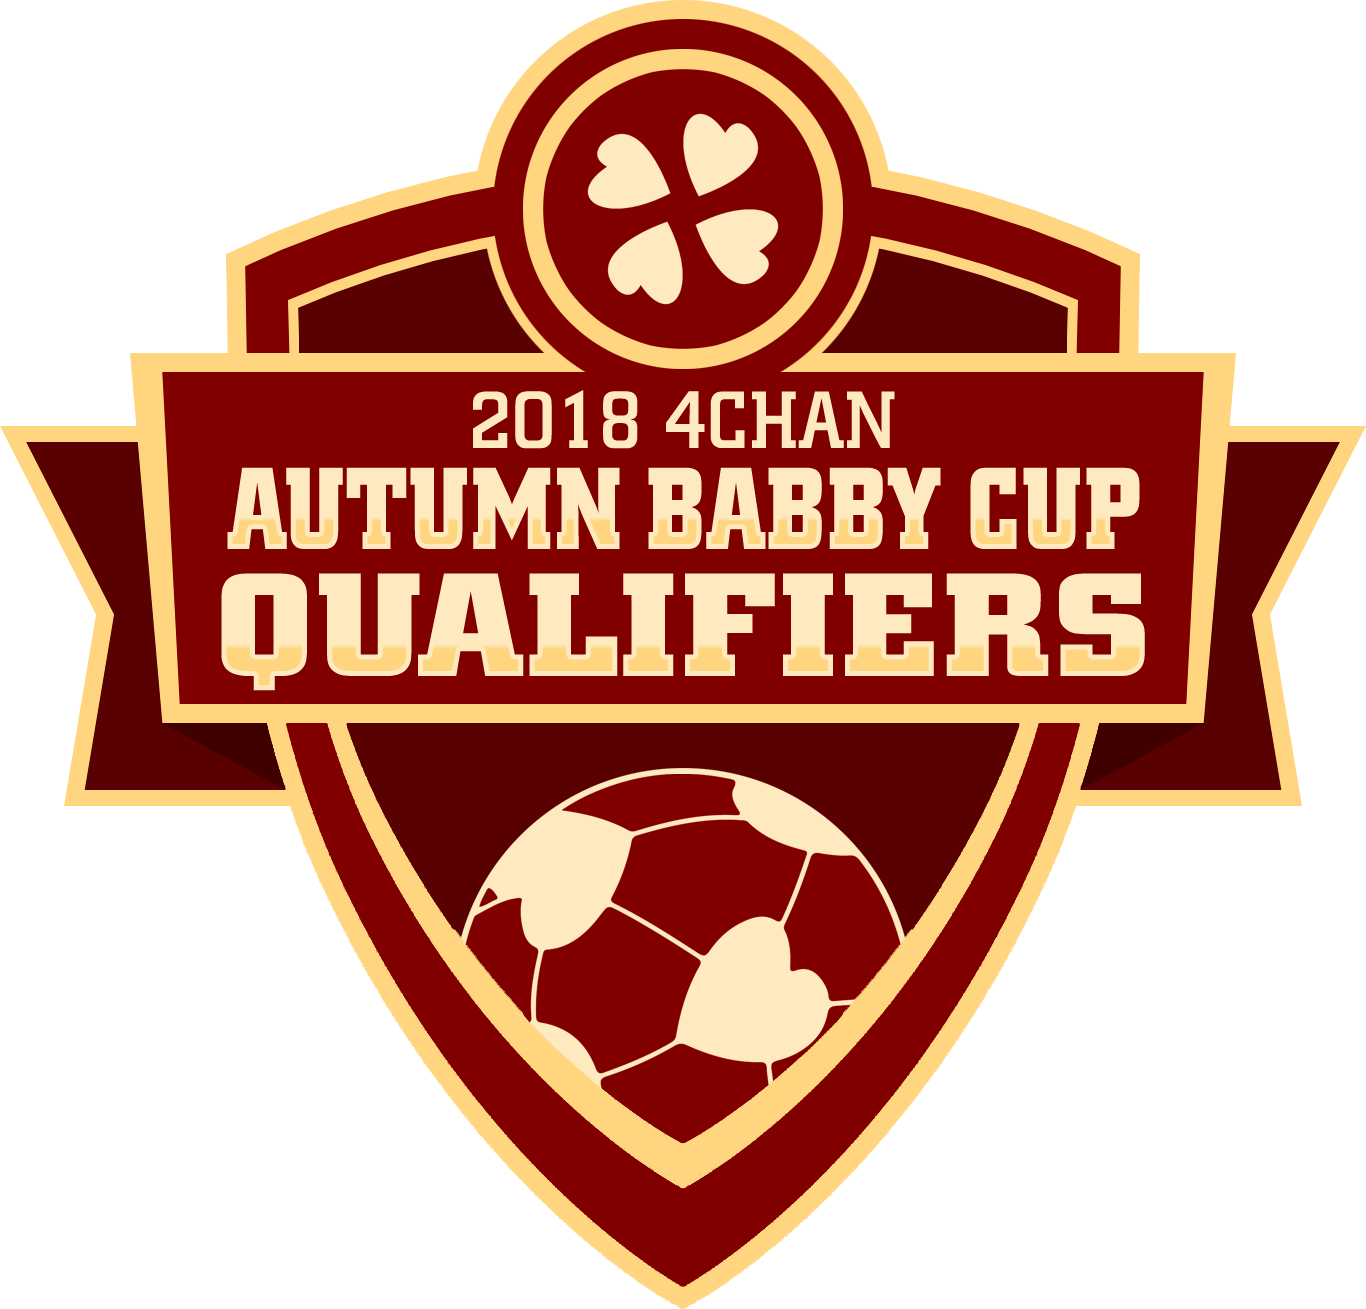 2018 4chan Autumn Babby Cup Qualifiers